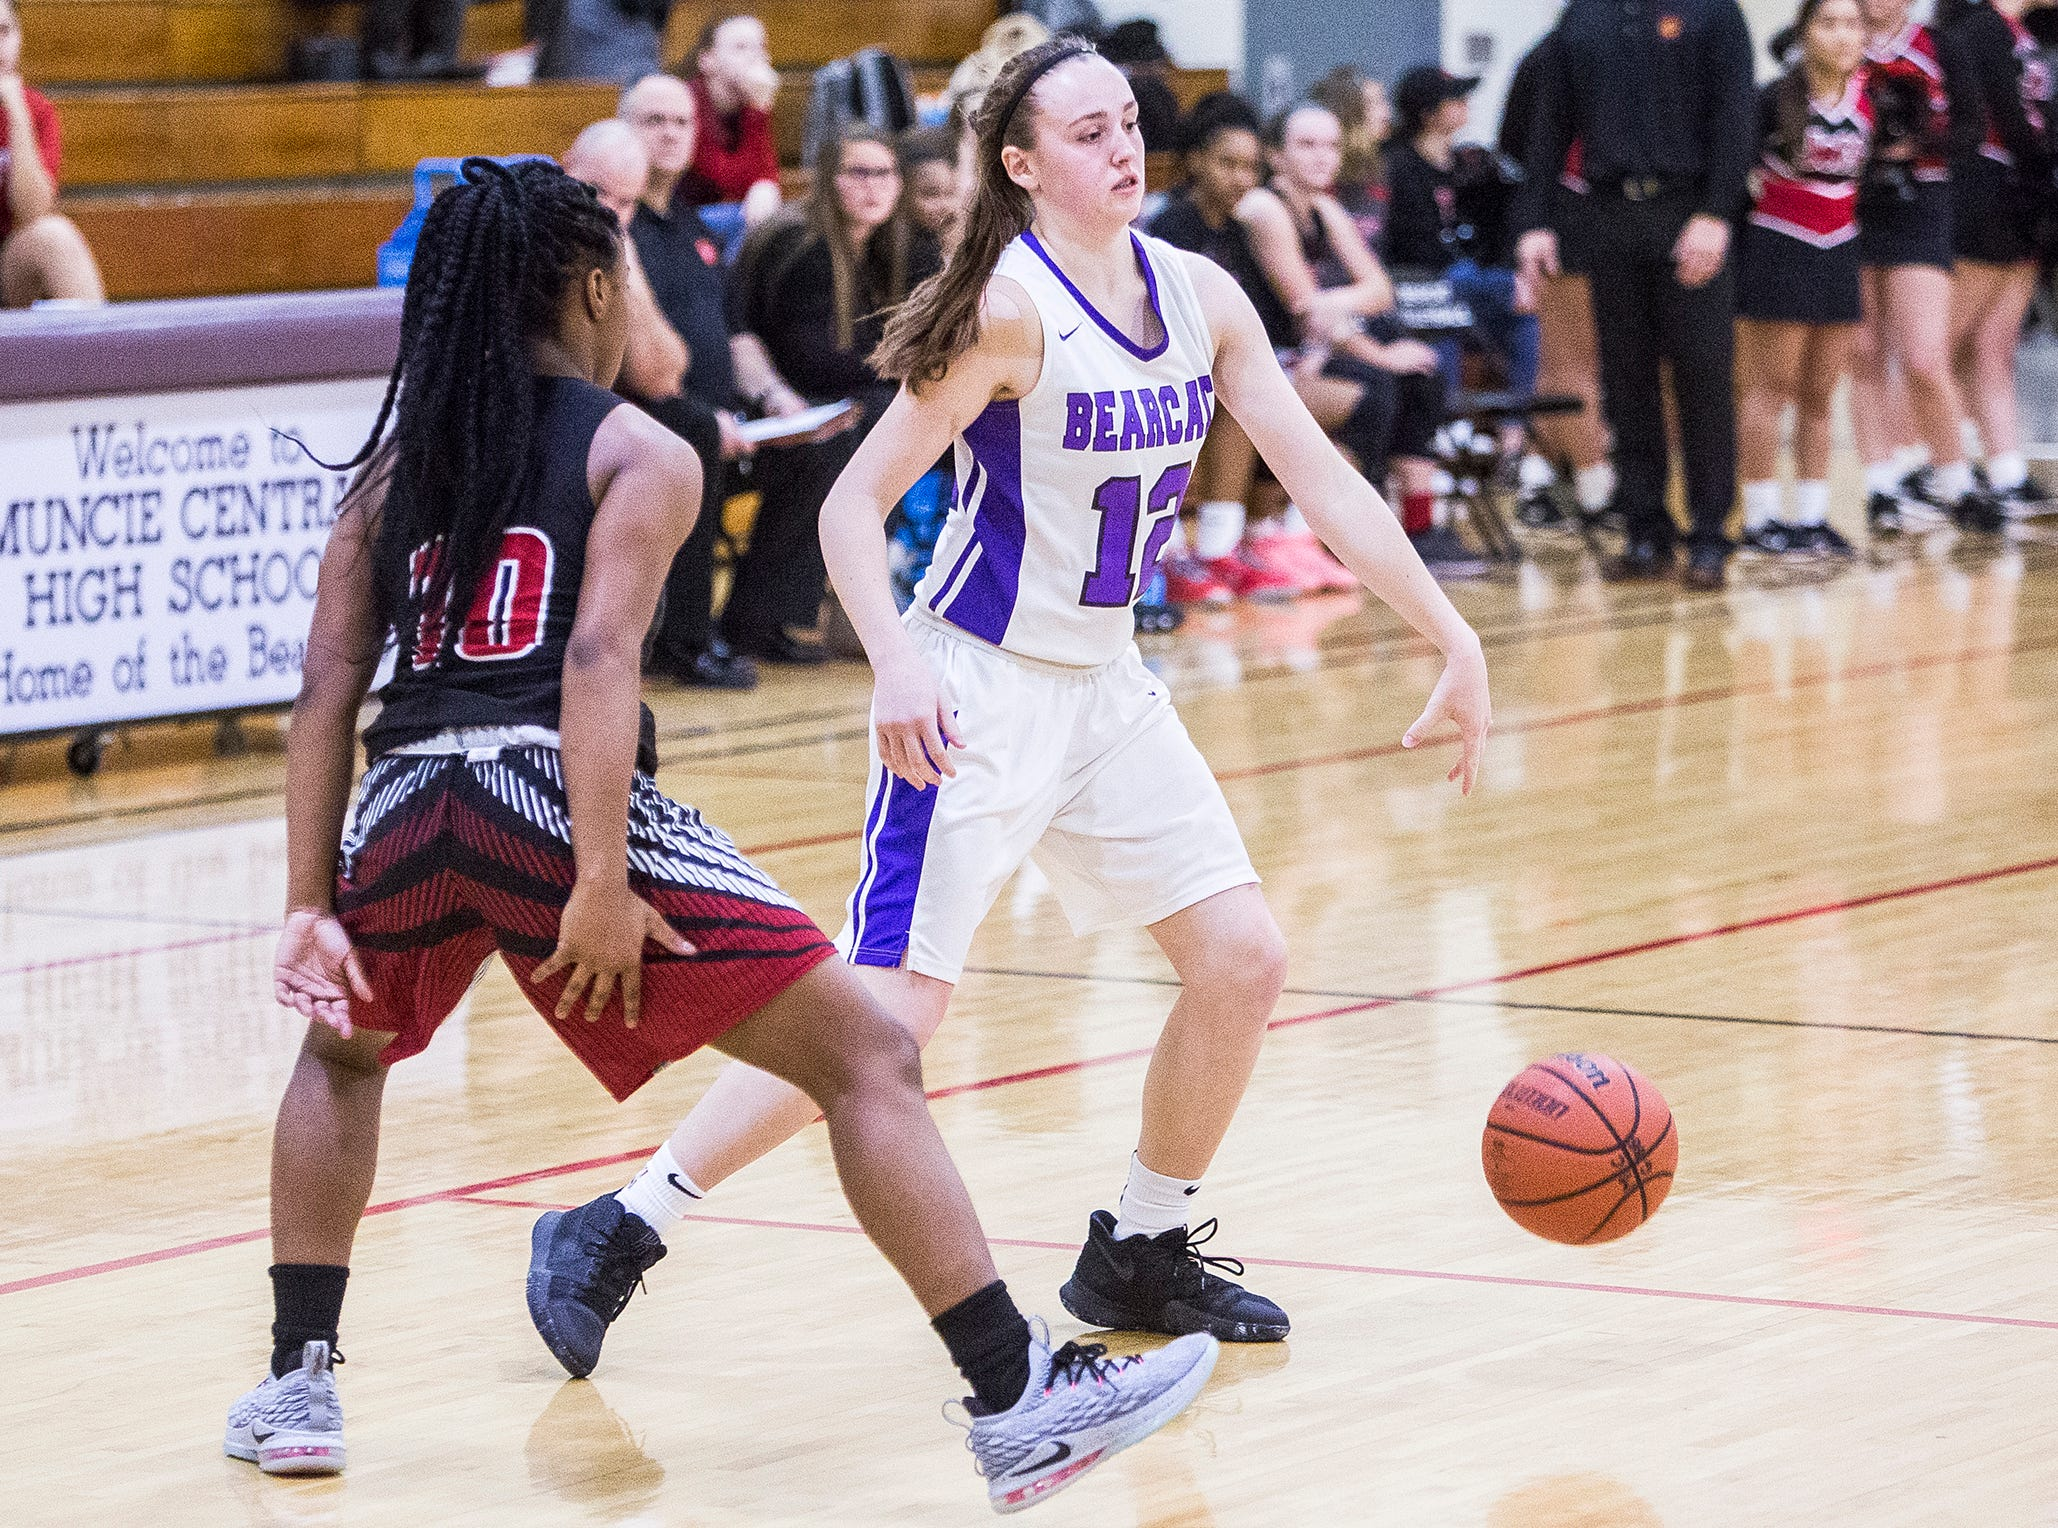 Central's Ayala Wilson dribbles against Lafayette Jeff's defense during their game at Central Friday, Jan. 4, 2019.